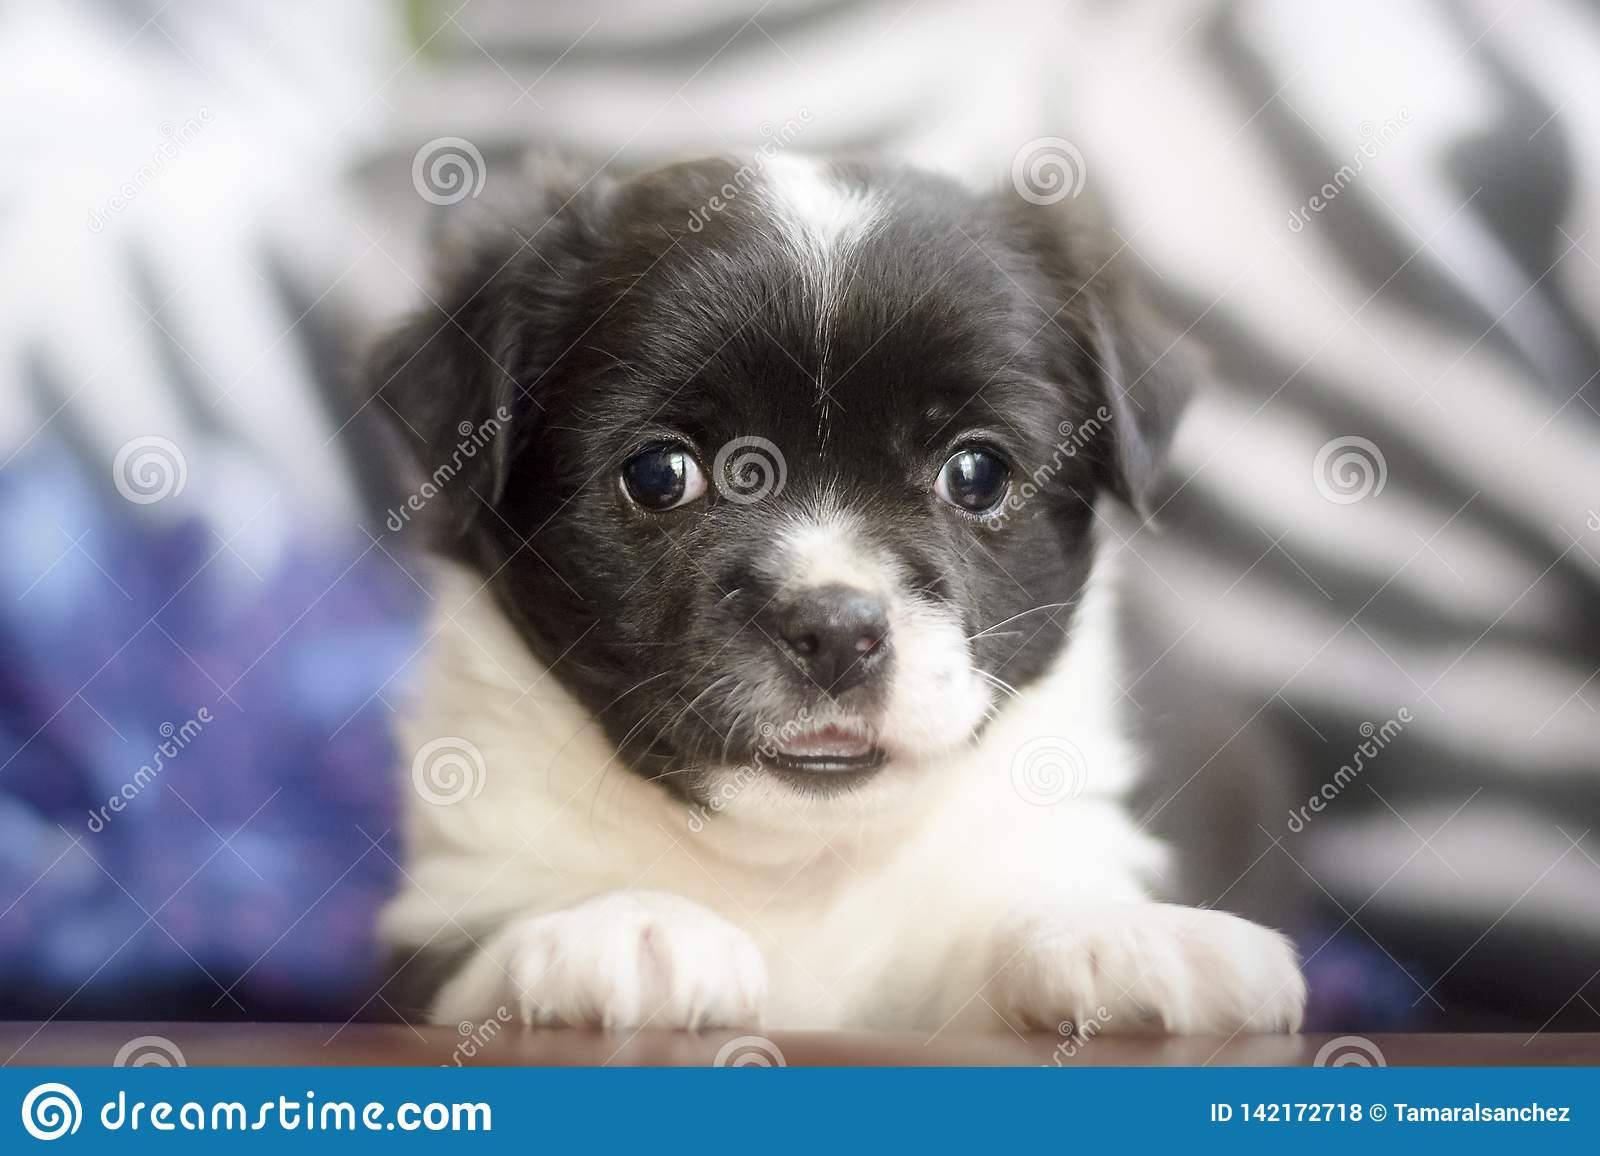 Adorable little mongrel puppy dog looking at the camera